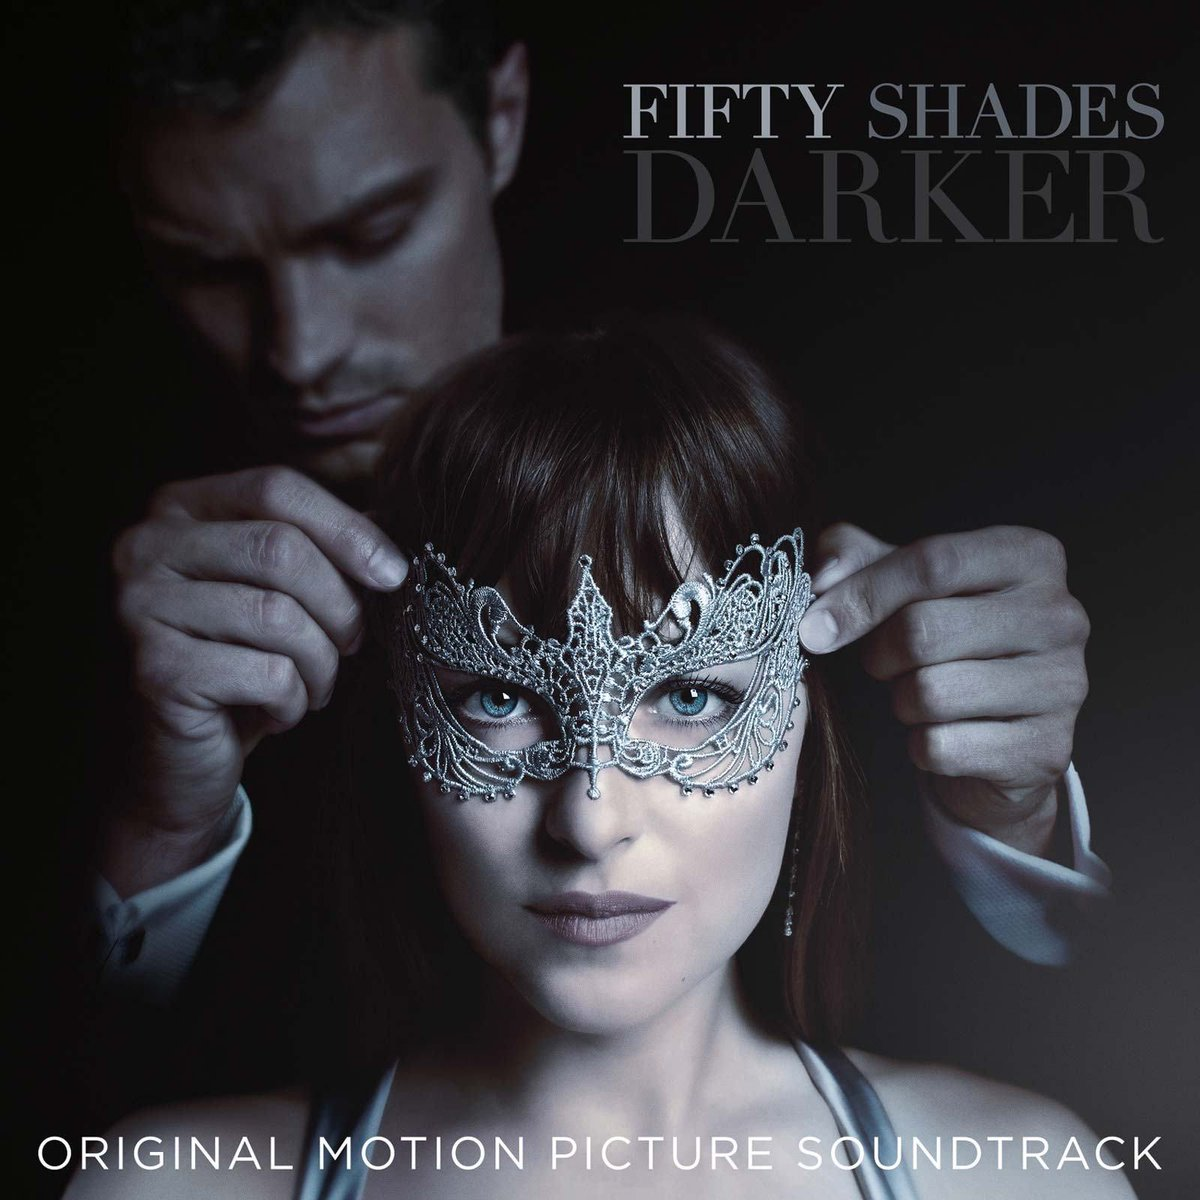 """Just announced, my song """"Code Blue"""" is on the @FiftyShades OST, available for pre-order on 1/13!  #FiftyShadesDarker https://t.co/E24yBqwOEU"""